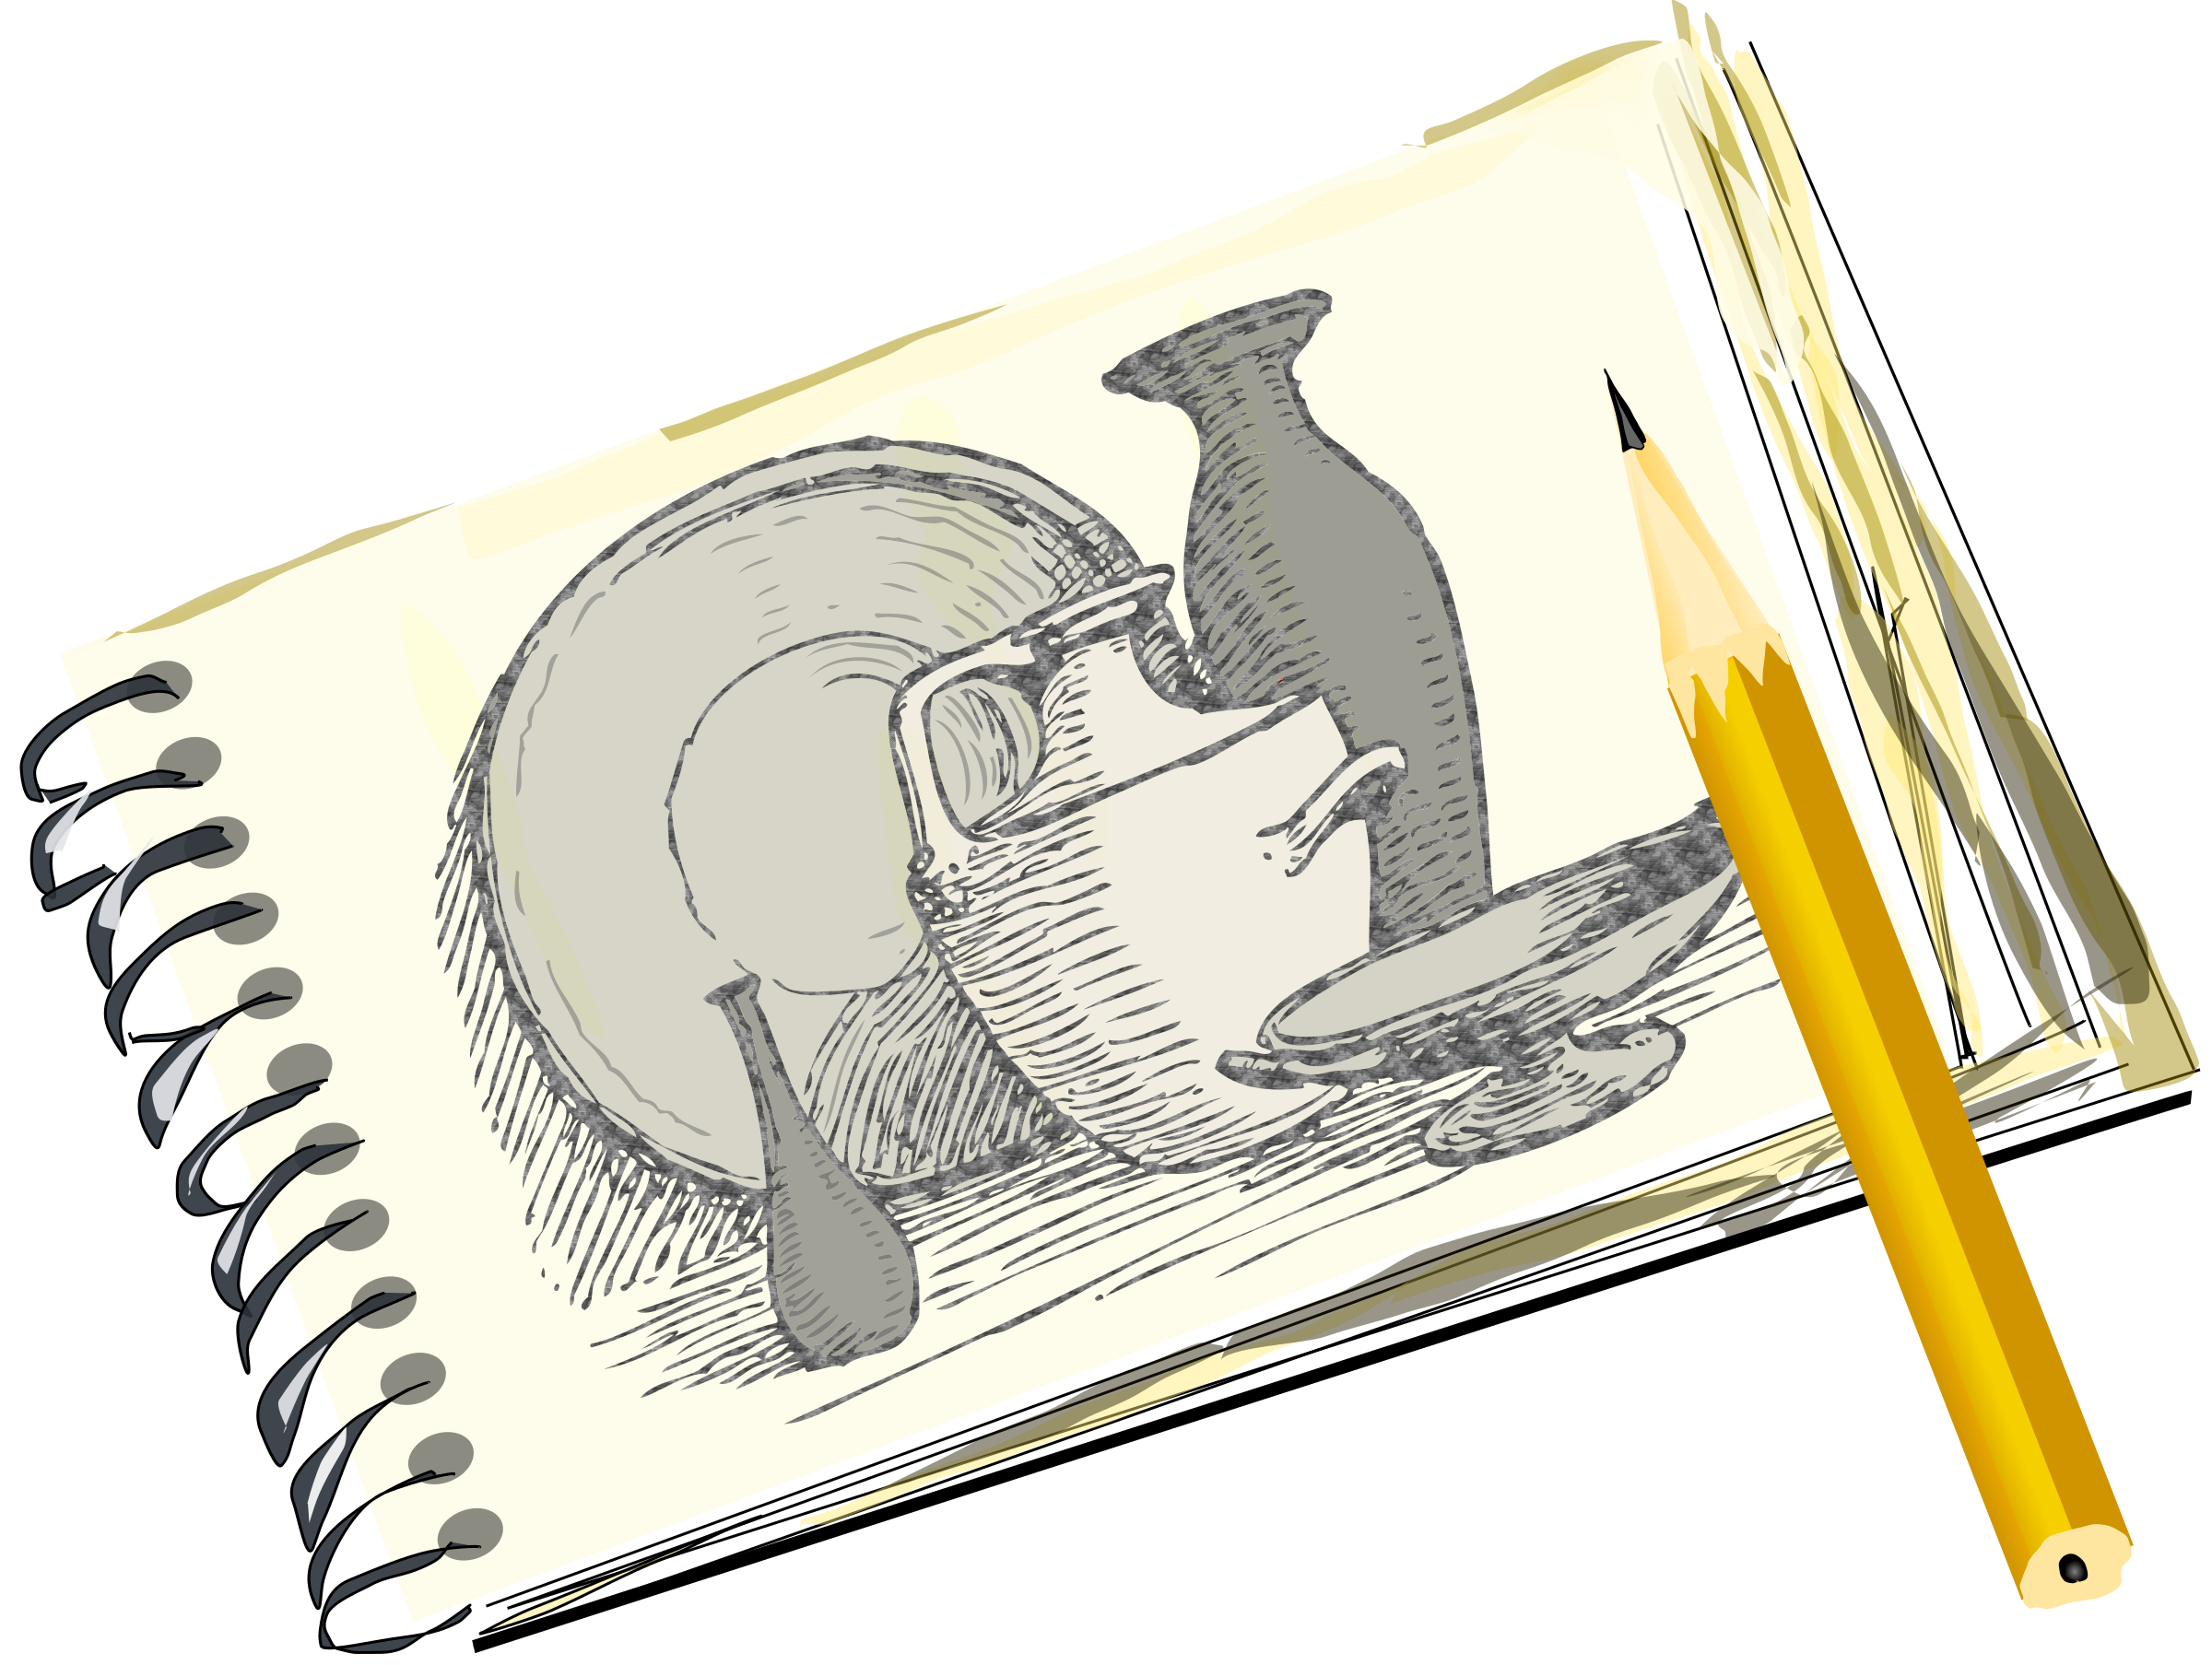 Sketchpad with Still Life by eady